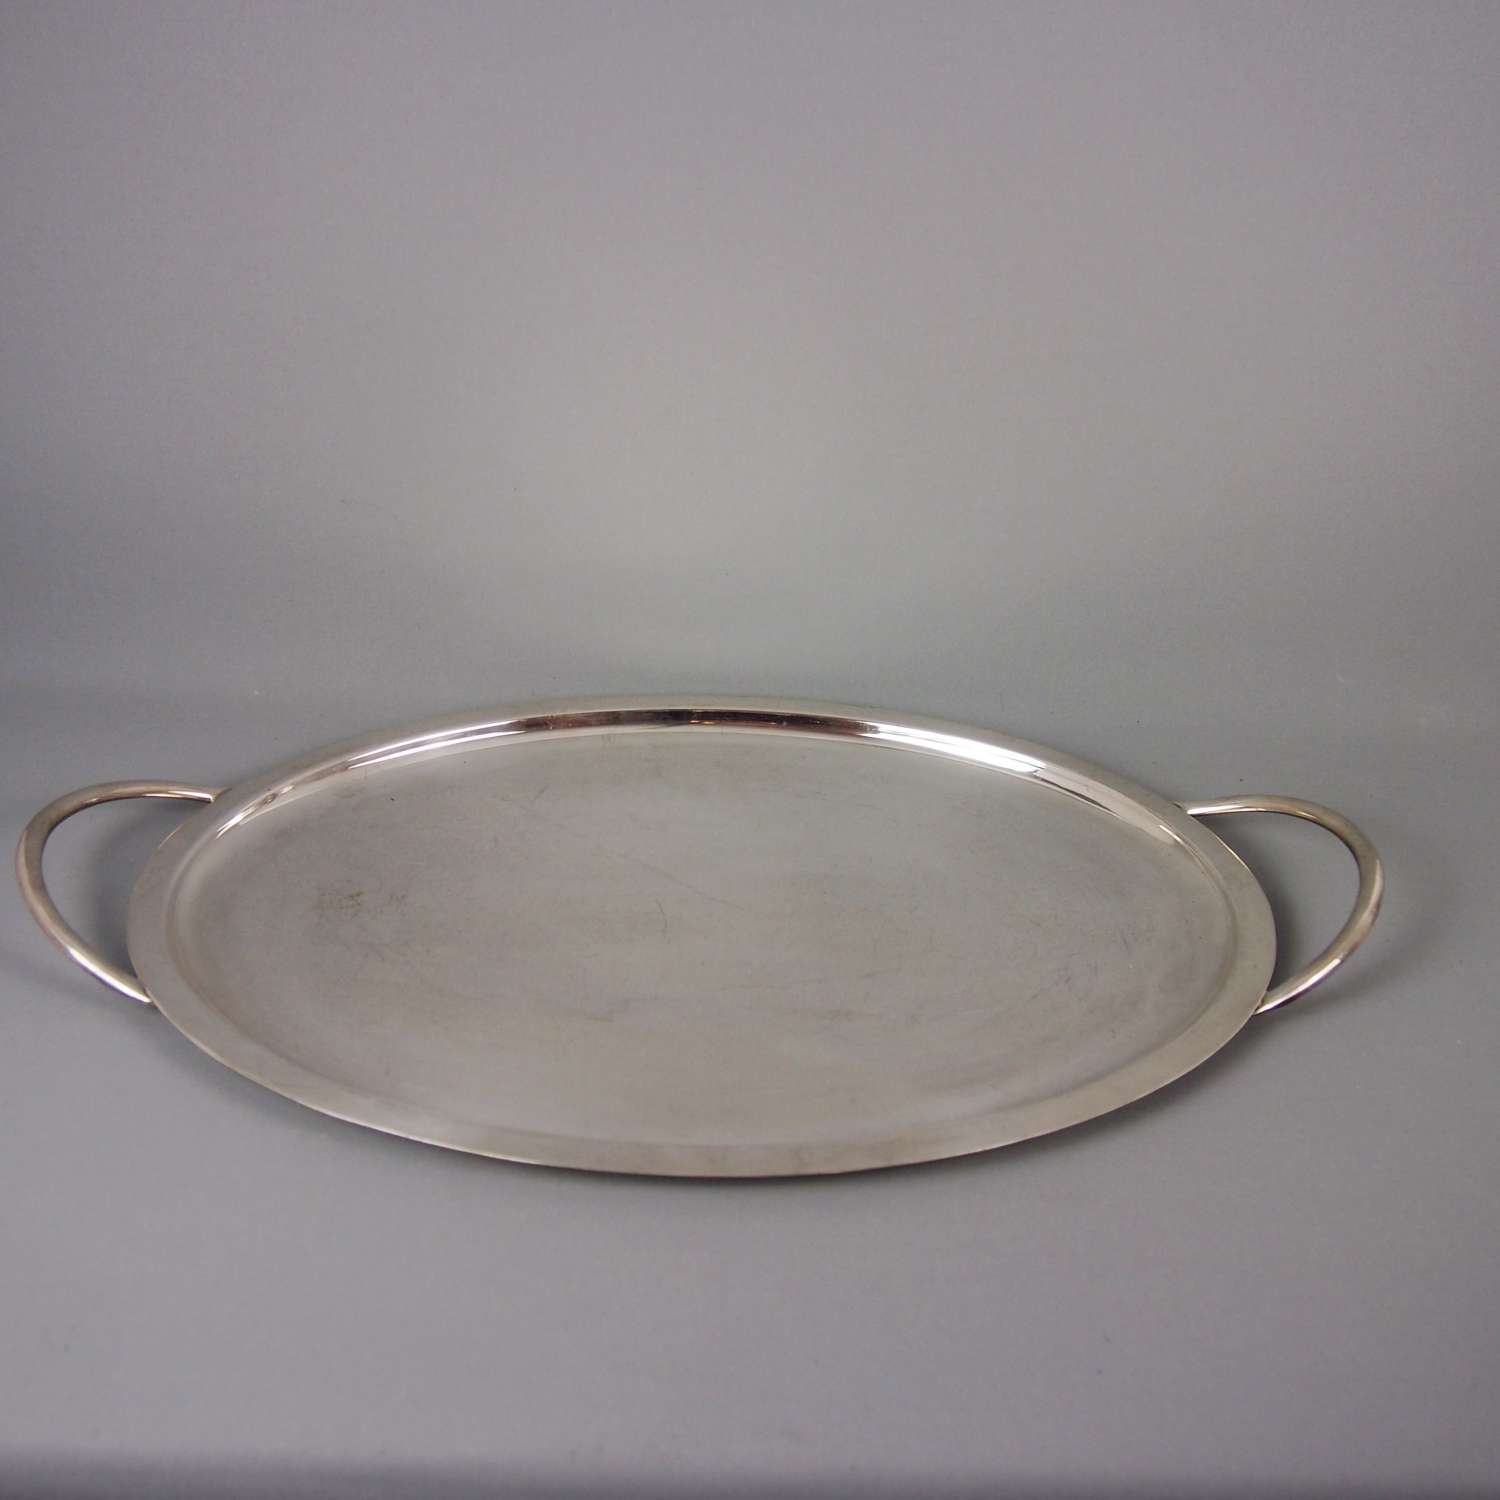 Oval Silver Plated Simple Tray C1930